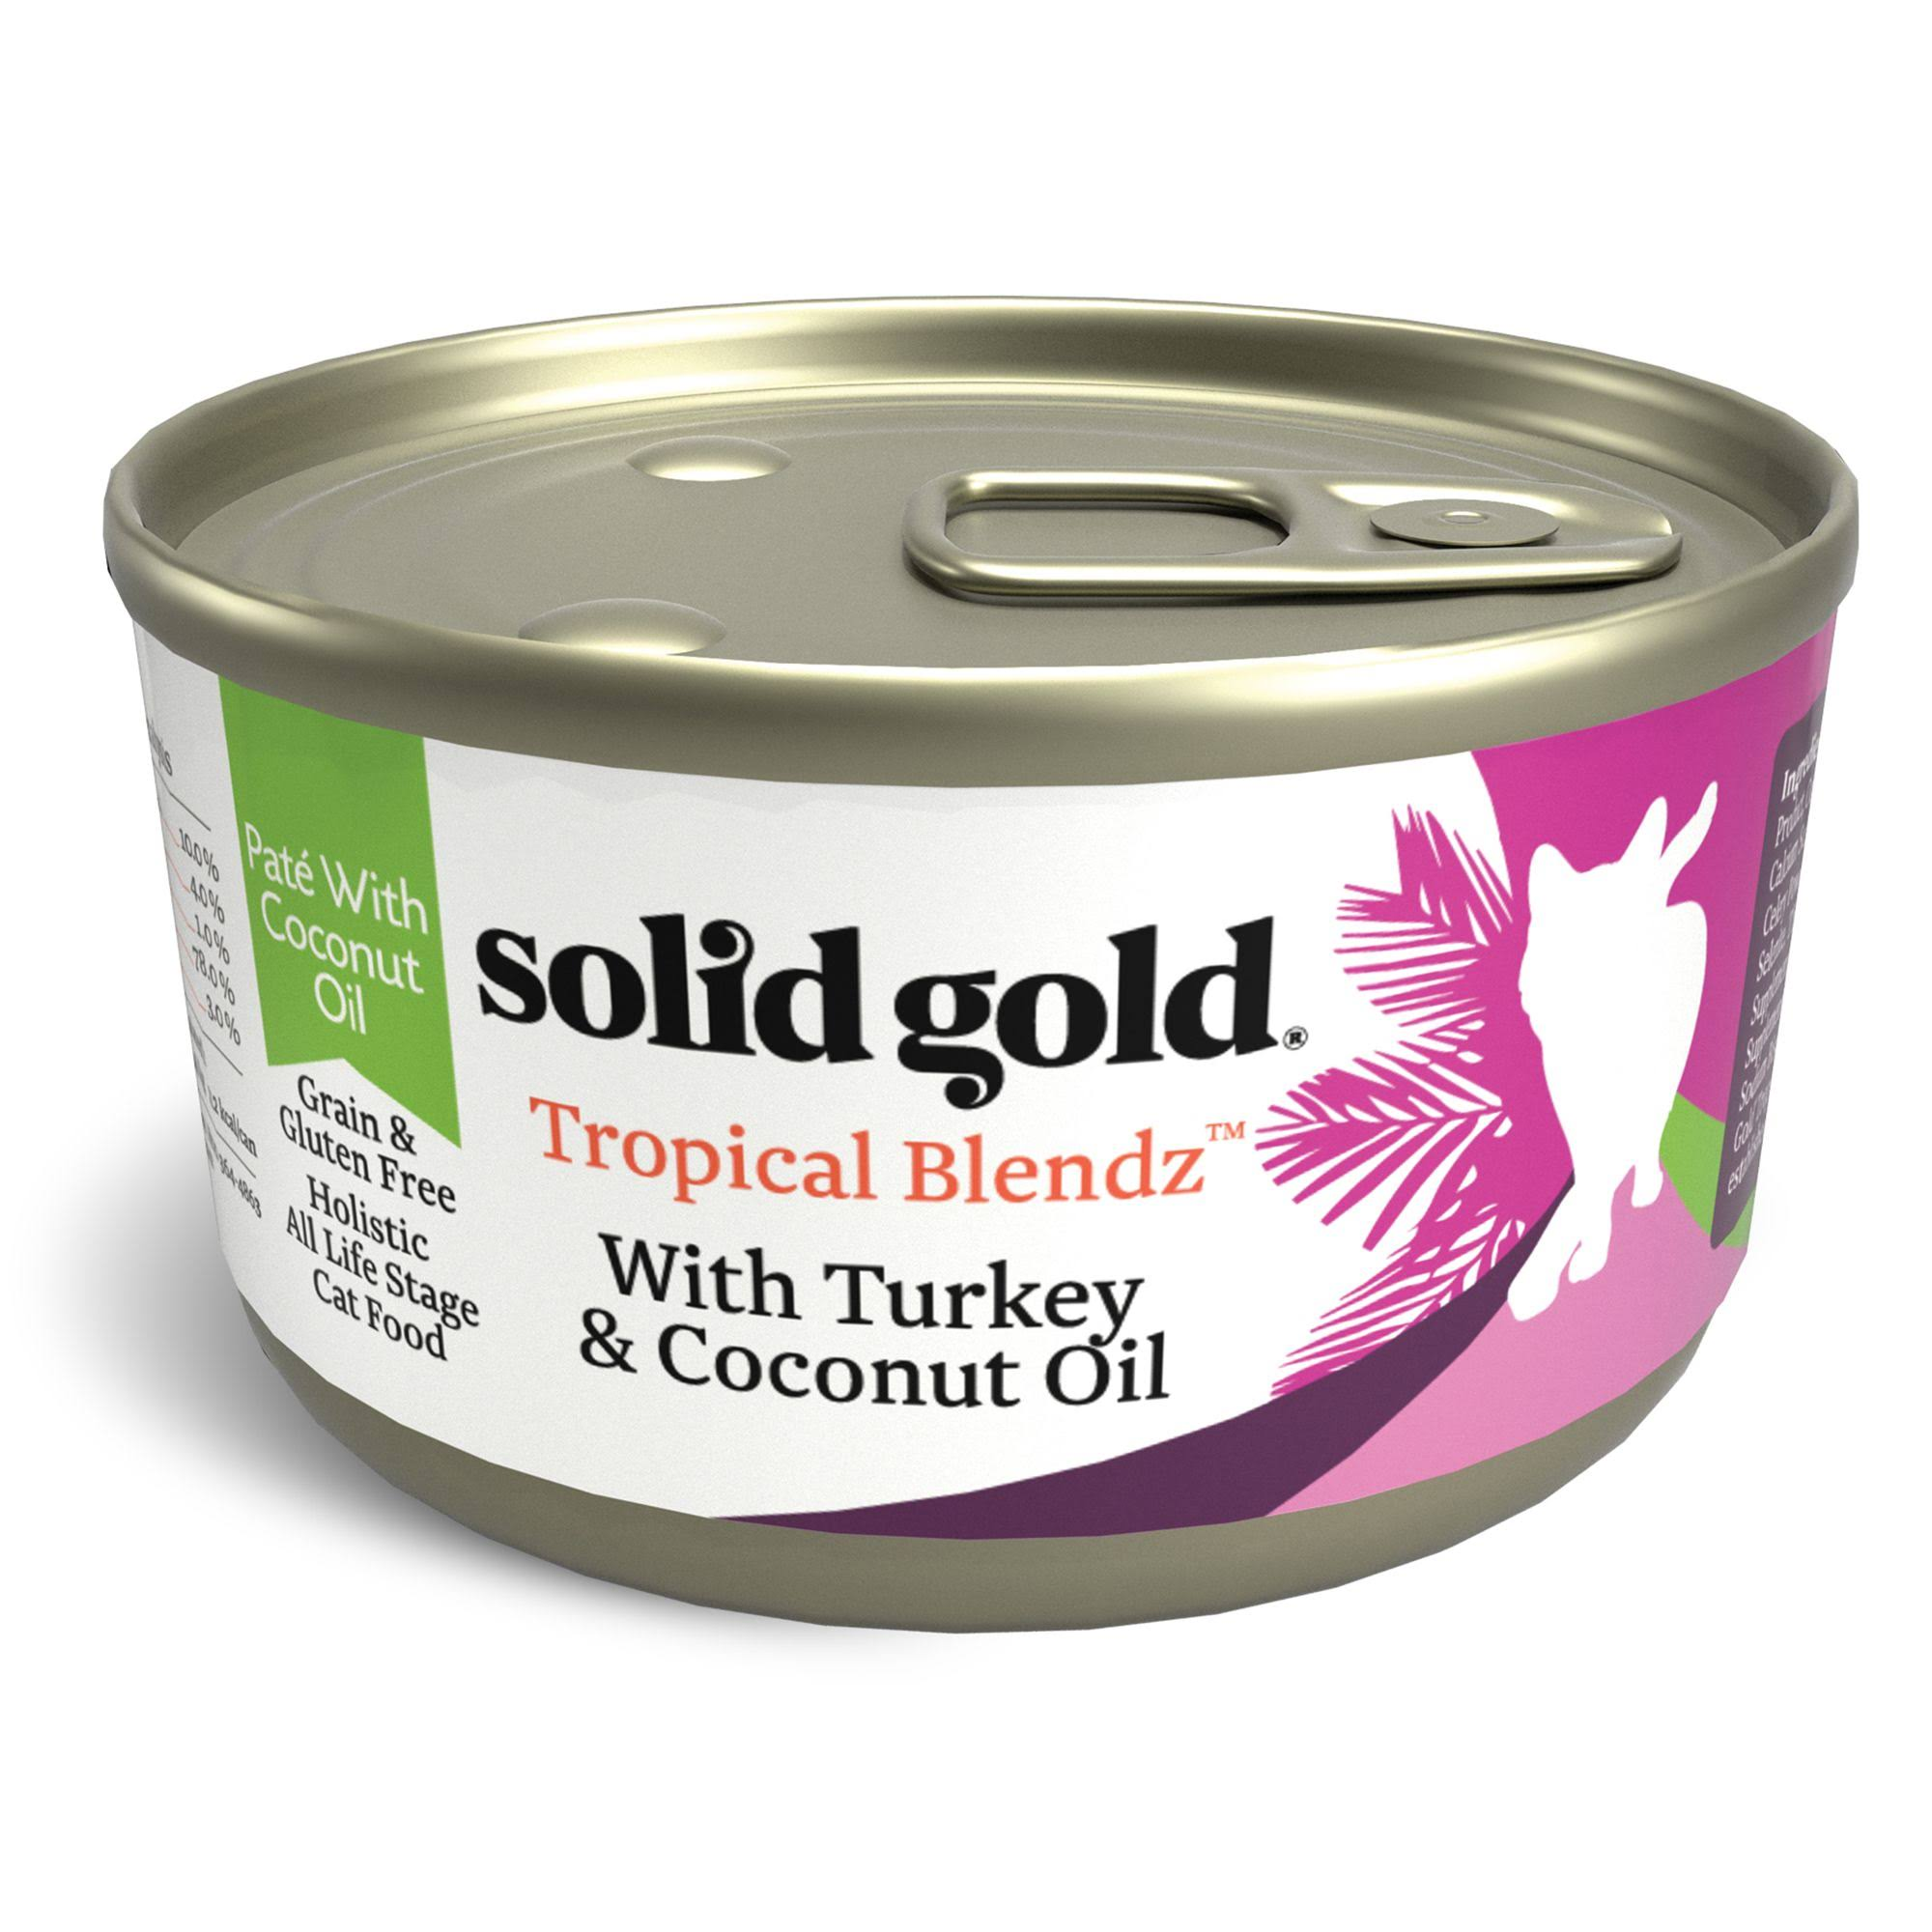 Solid Gold 3 oz Tropical Blendz Pate with Coconut Oil Cat Food